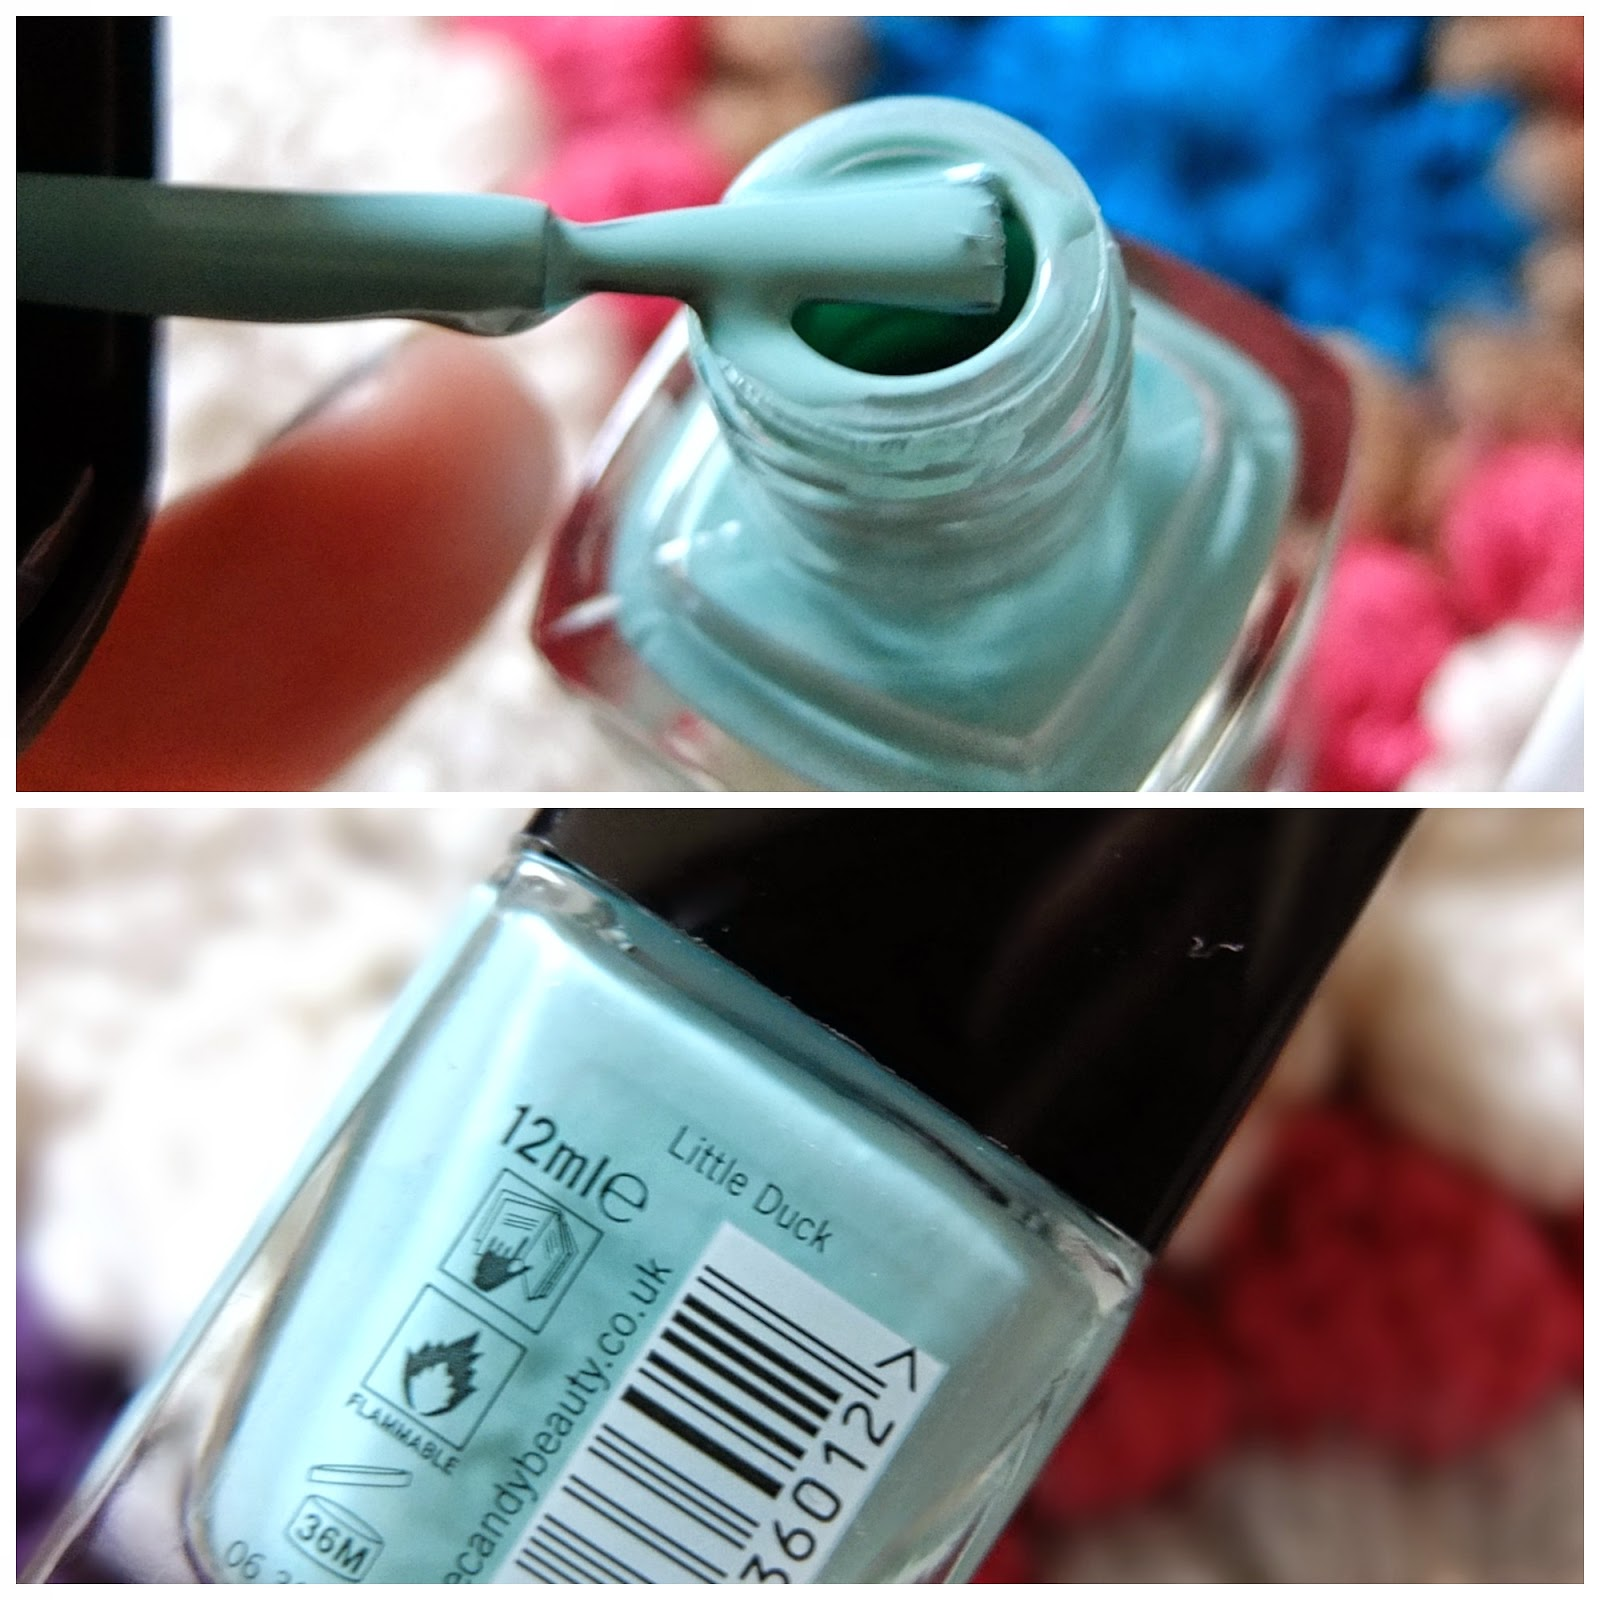 Beauty blog review of the Tanya Burr lipgloss and nail varnish range